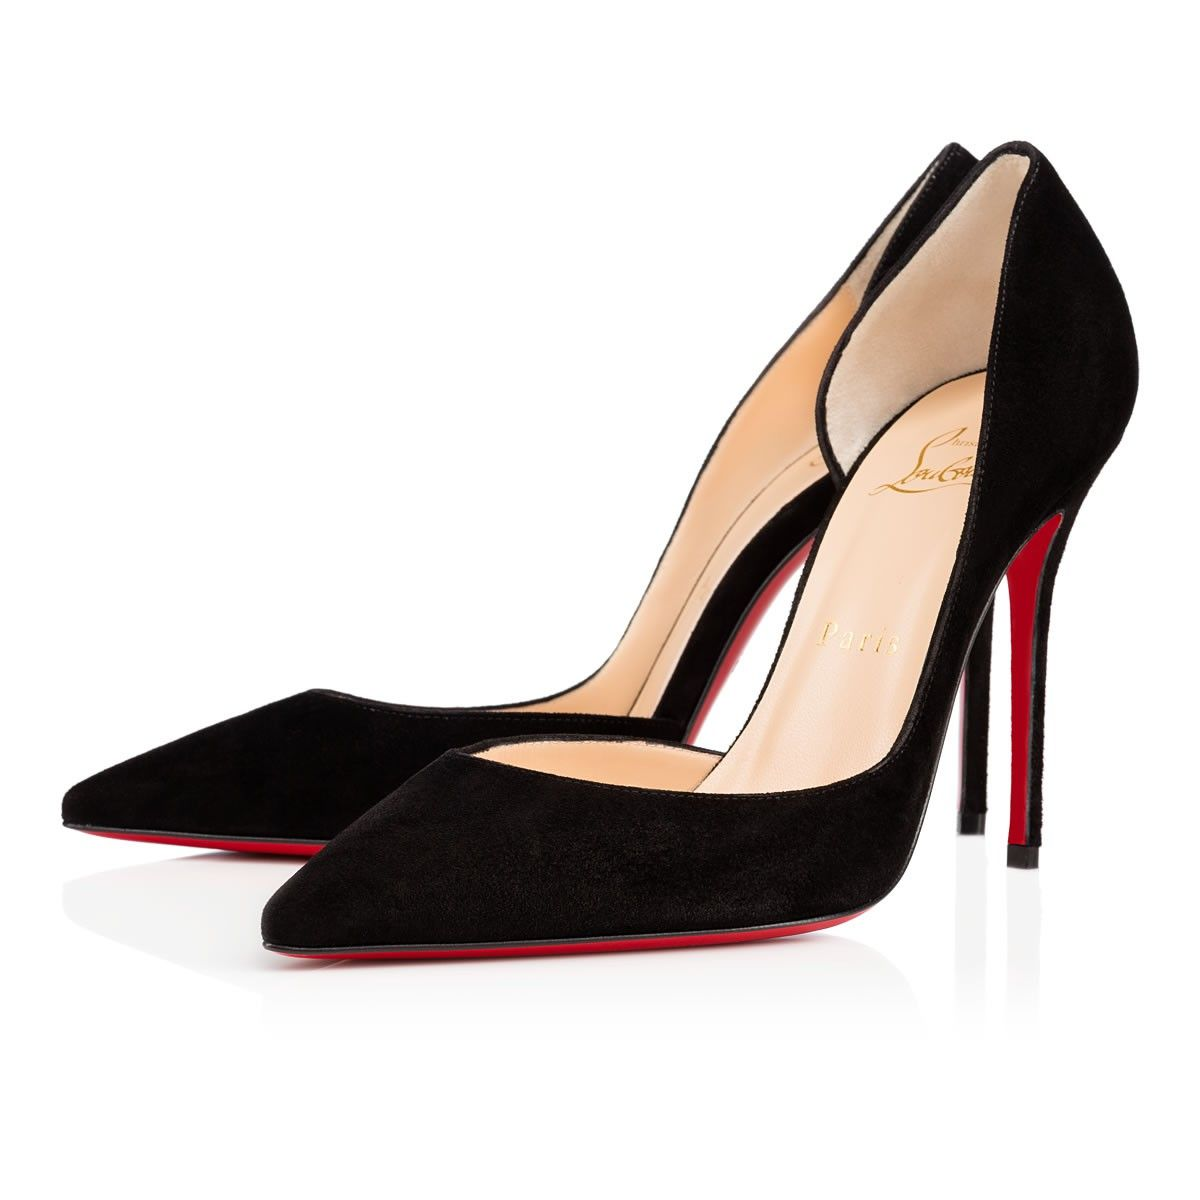 aac44f1cc2ef Christian Louboutin United States Official Online Boutique - Iriza 100 Black  Suede available online. Discover